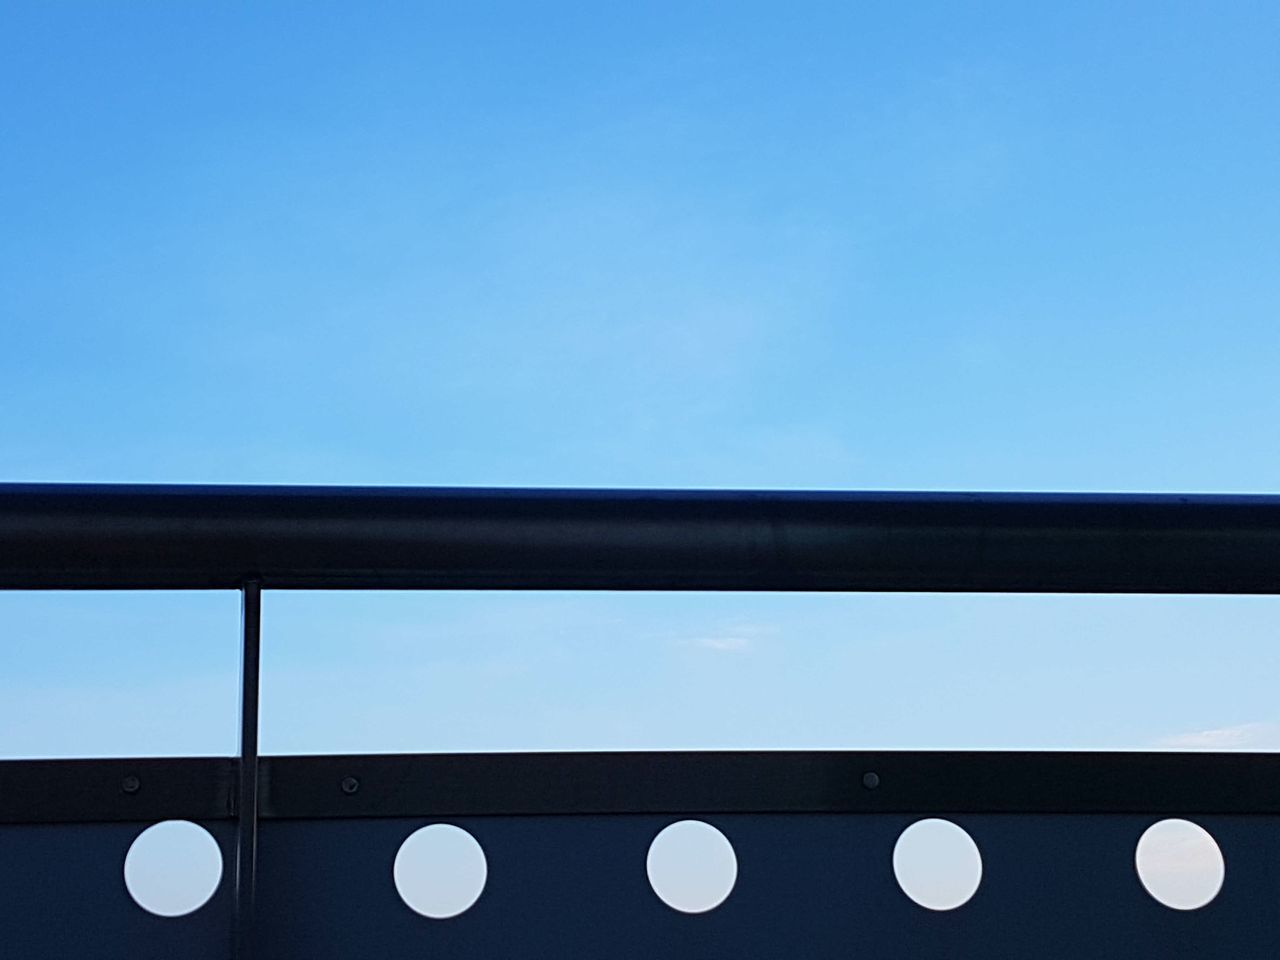 No People Sky Day Clear Sky Outdoors City Contrast Circles Blue Shapes And Lines Silhouette